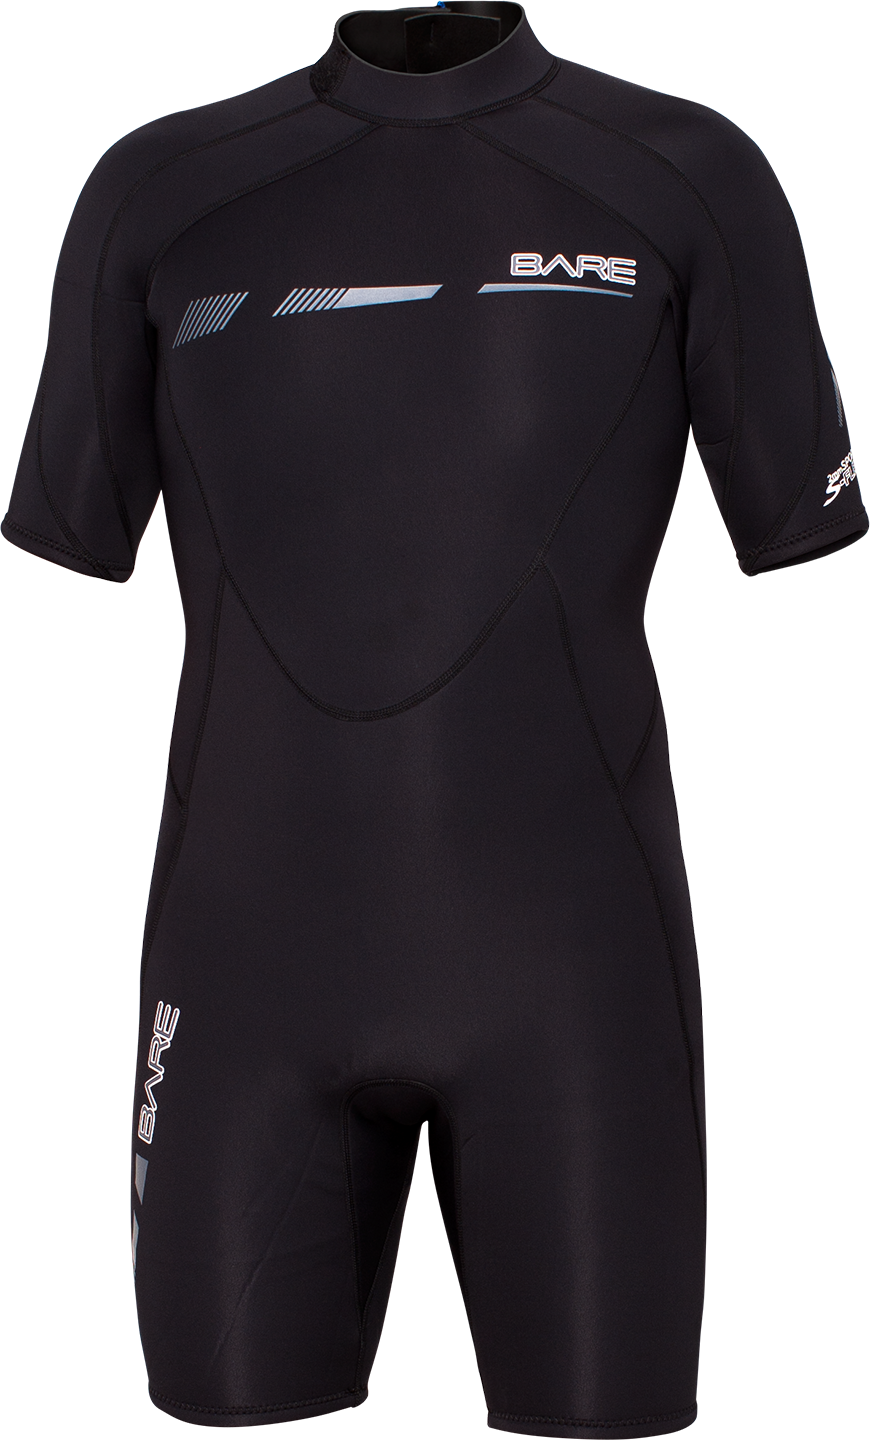 Bare Men 2mm S-flex shorty wetsuit